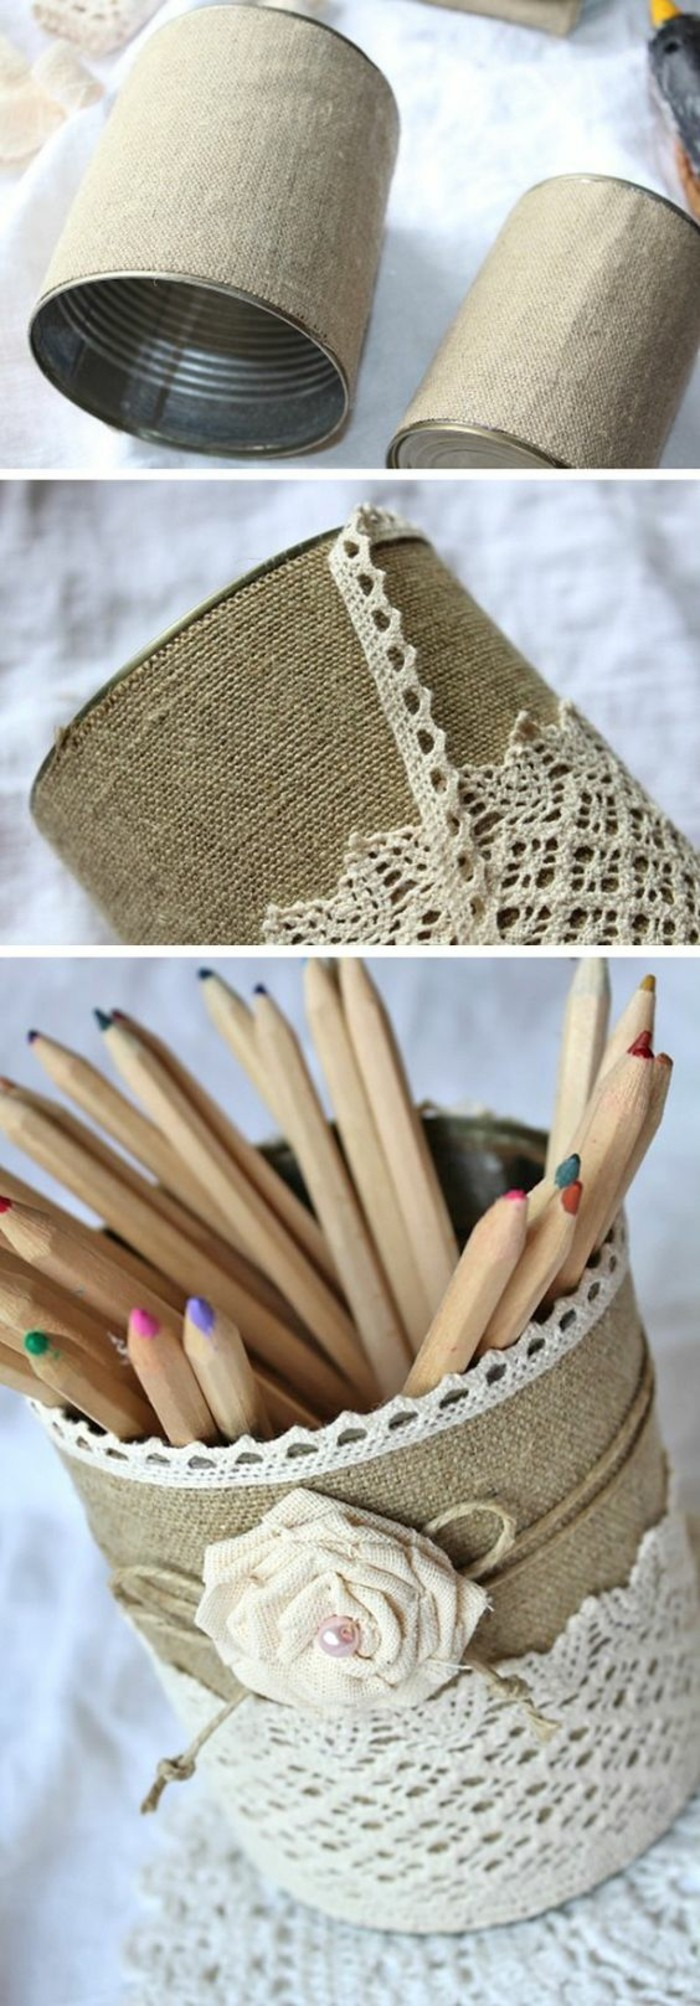 tin cans, two cans covered with burlap, decorated with lace, string and a fabric rose, containing colored pencils